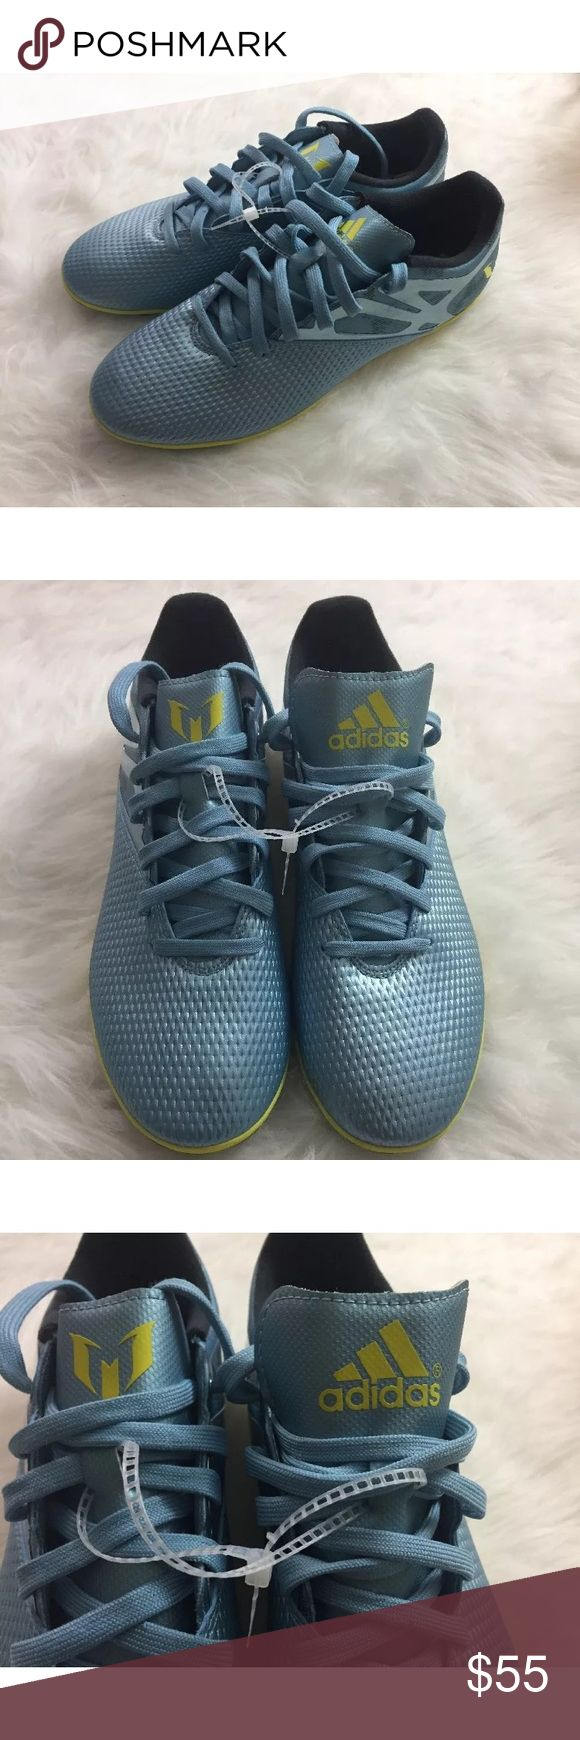 ADIDAS indoor turf soccer cleats Messi 15.3 Brand new without tags or box. Leonel Messi 15.3 indoor cleats. adidas Shoes Athletic Shoes